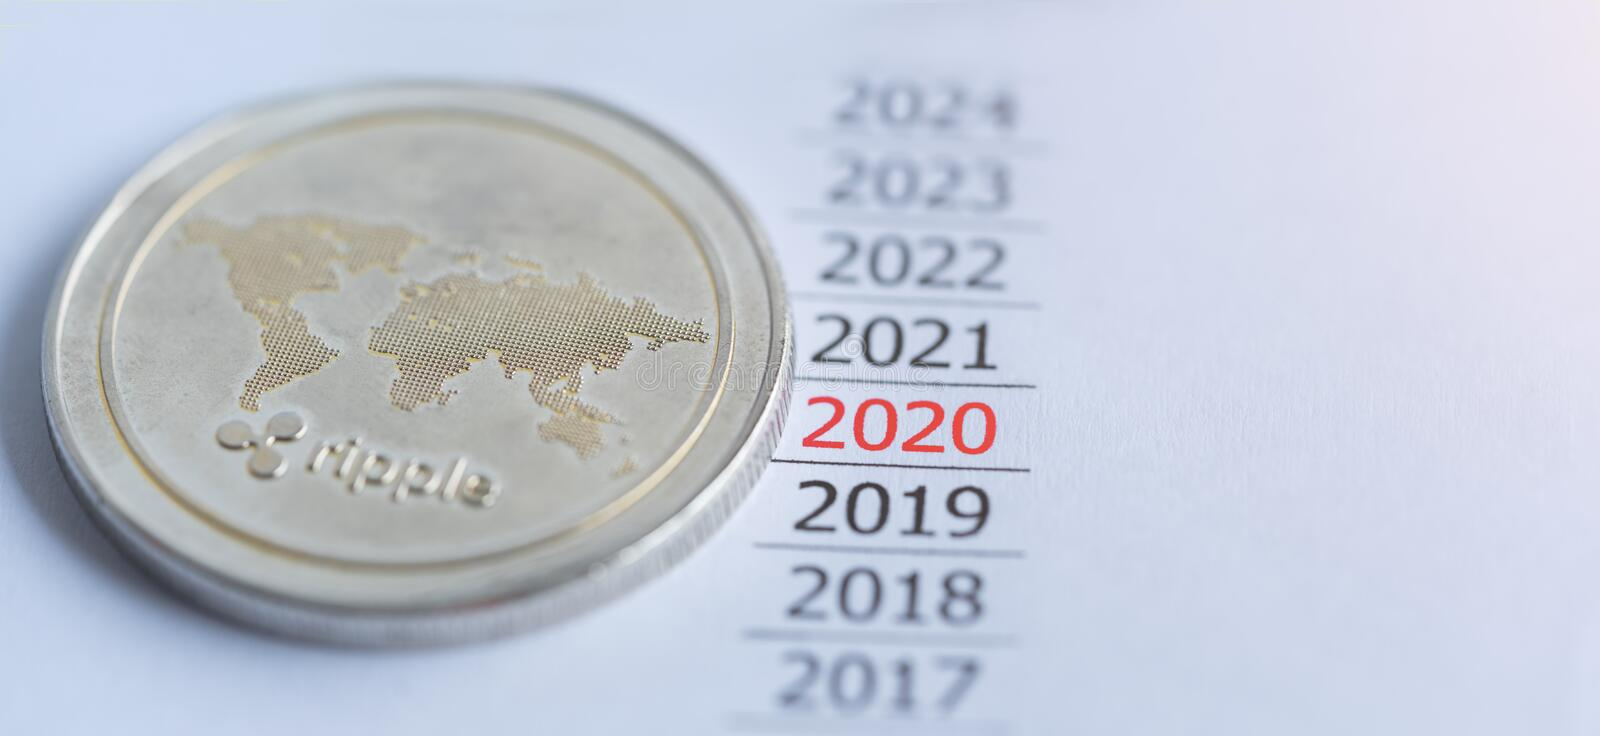 new cryptocurrency 2021 coins